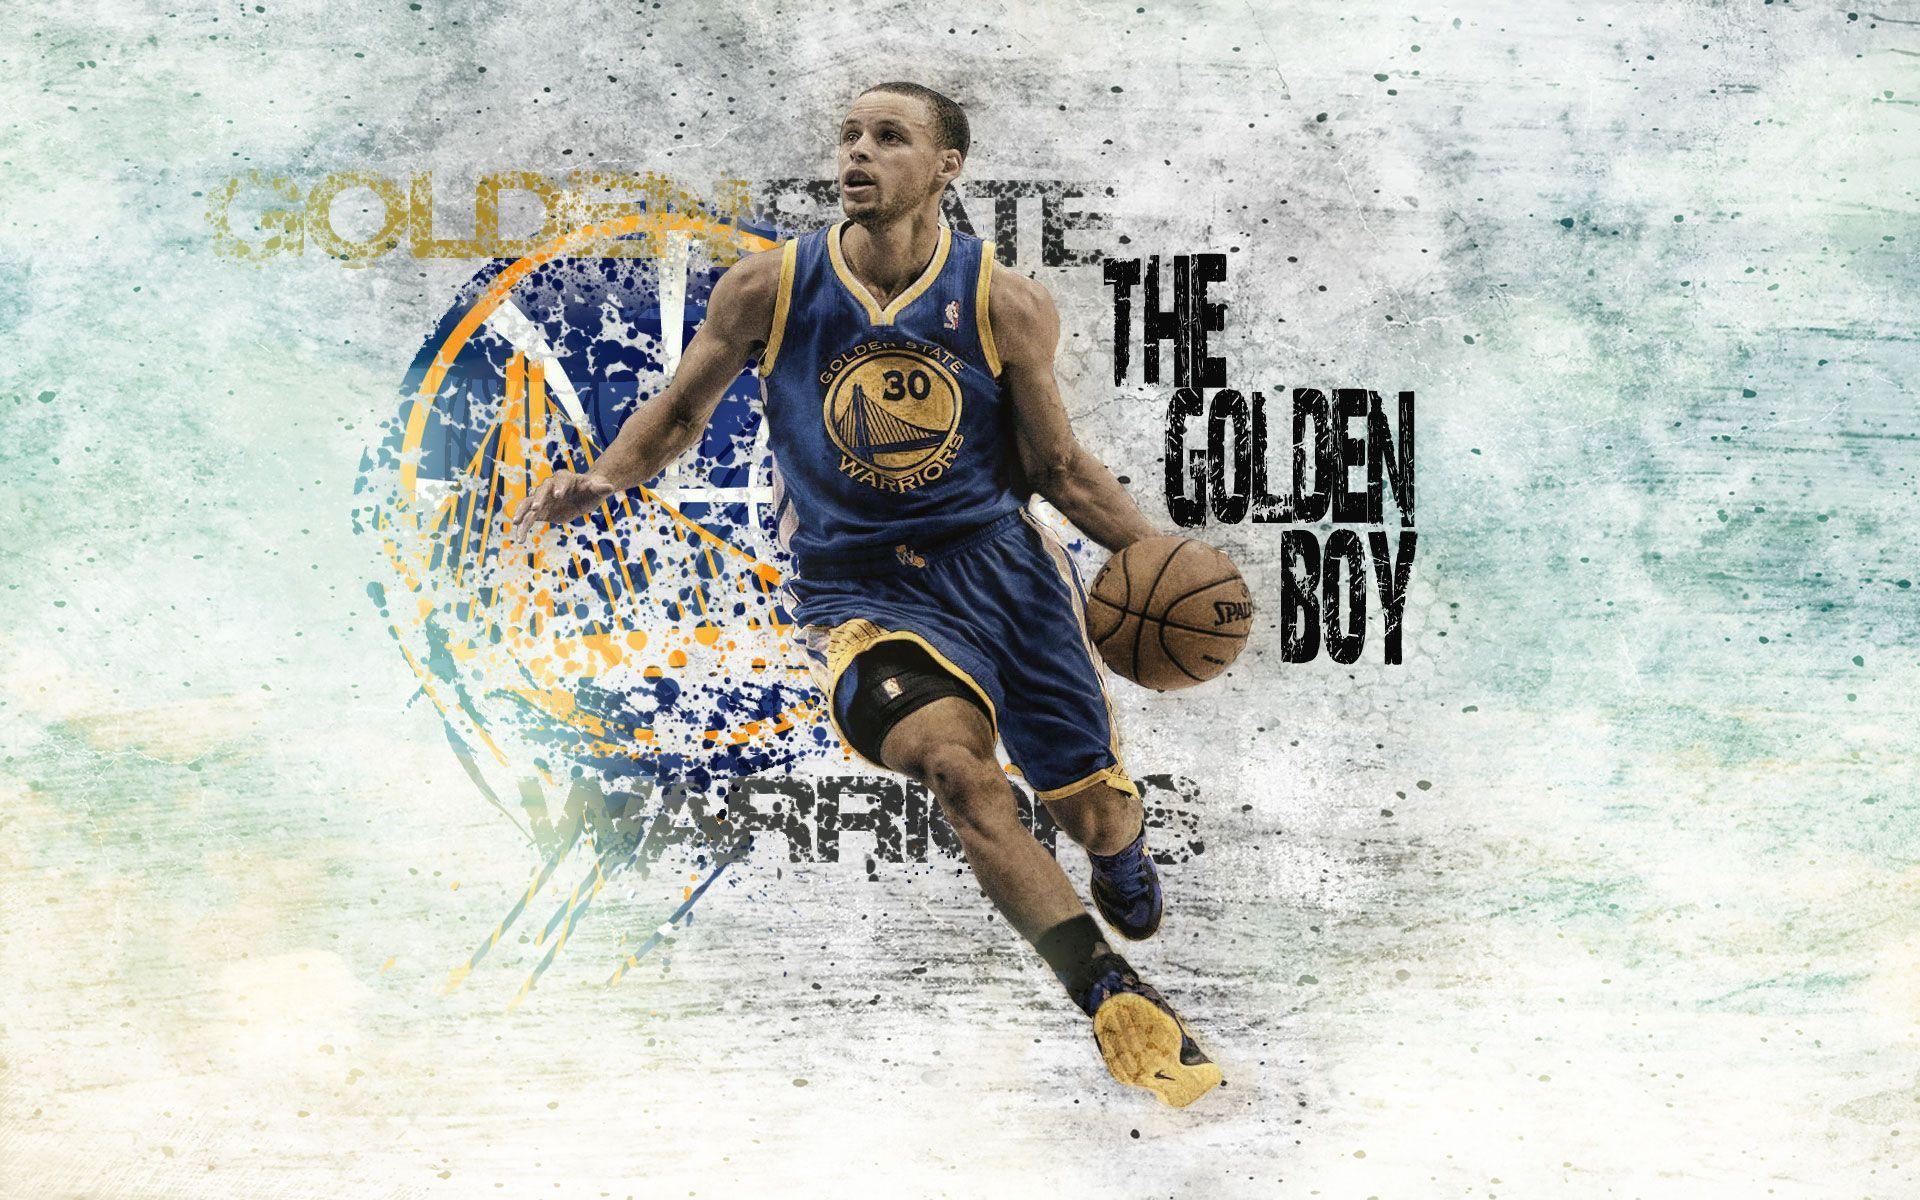 Stephen Curry wallpaper free download | Wallpapers, Backgrounds ...